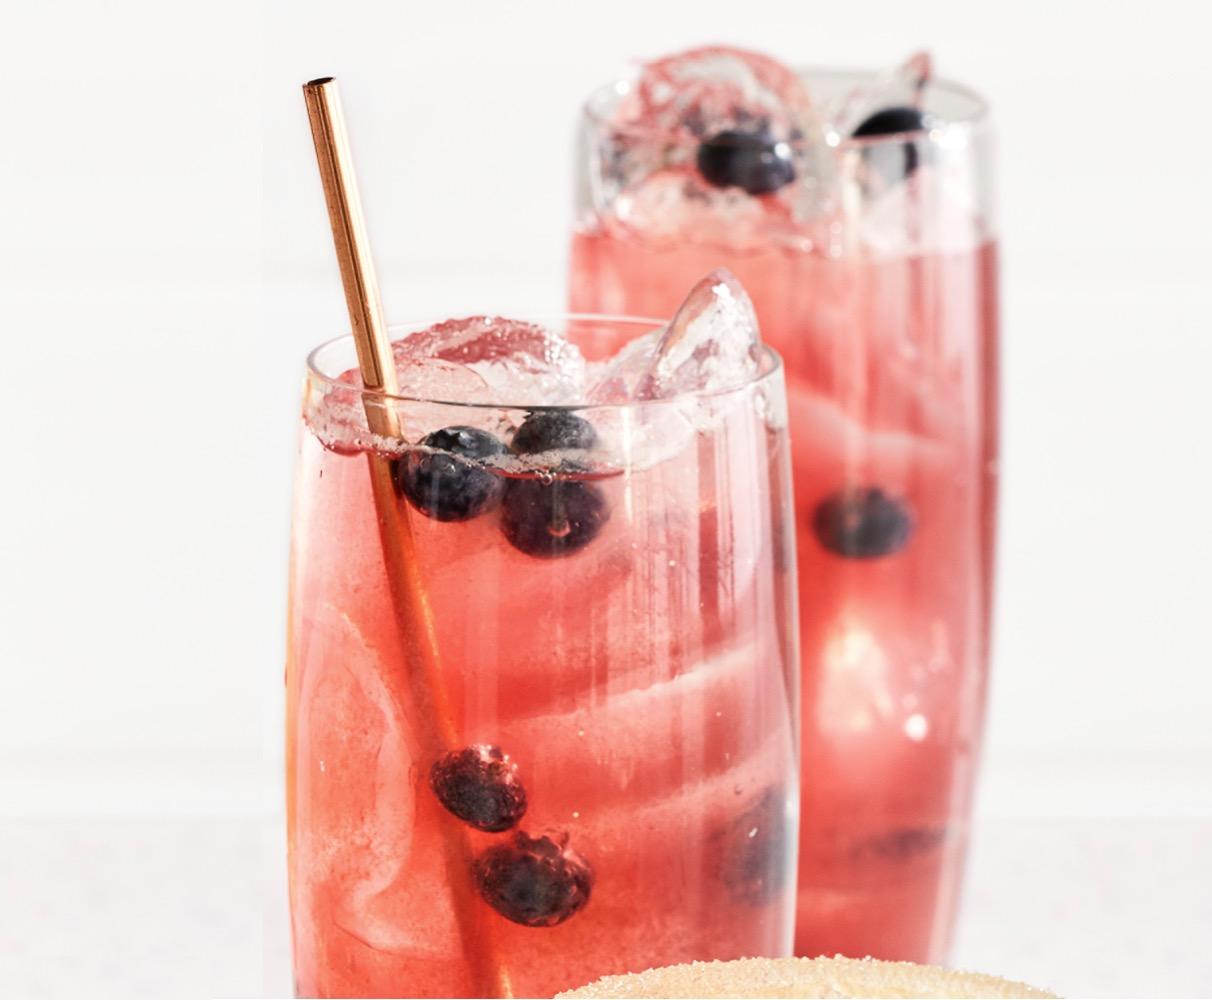 Blueberry-Bourbon Shrub